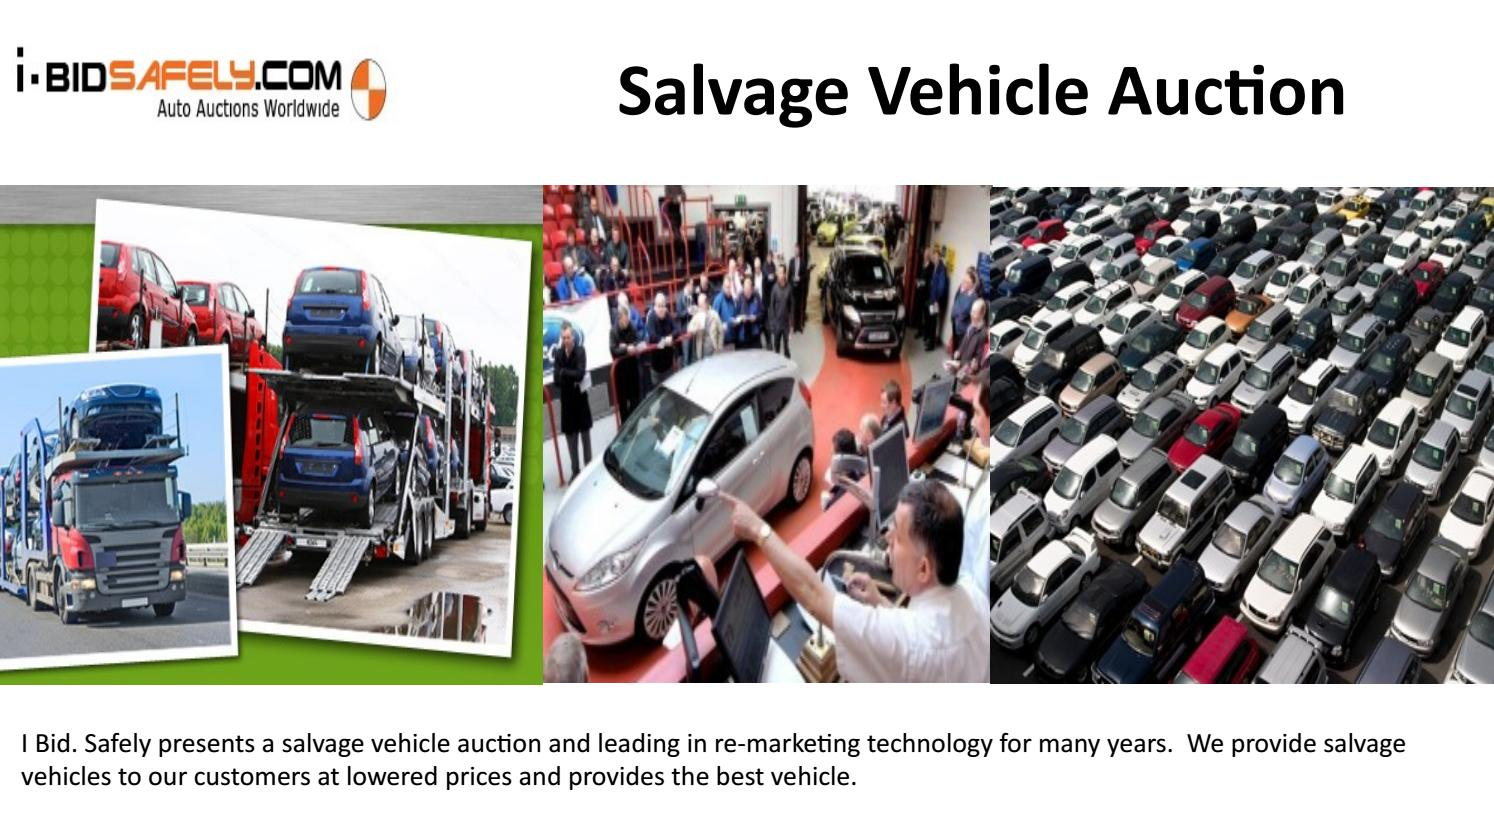 Cheap Salvage Cars For Sale-Slavage world auctions by I Bid Safely ...